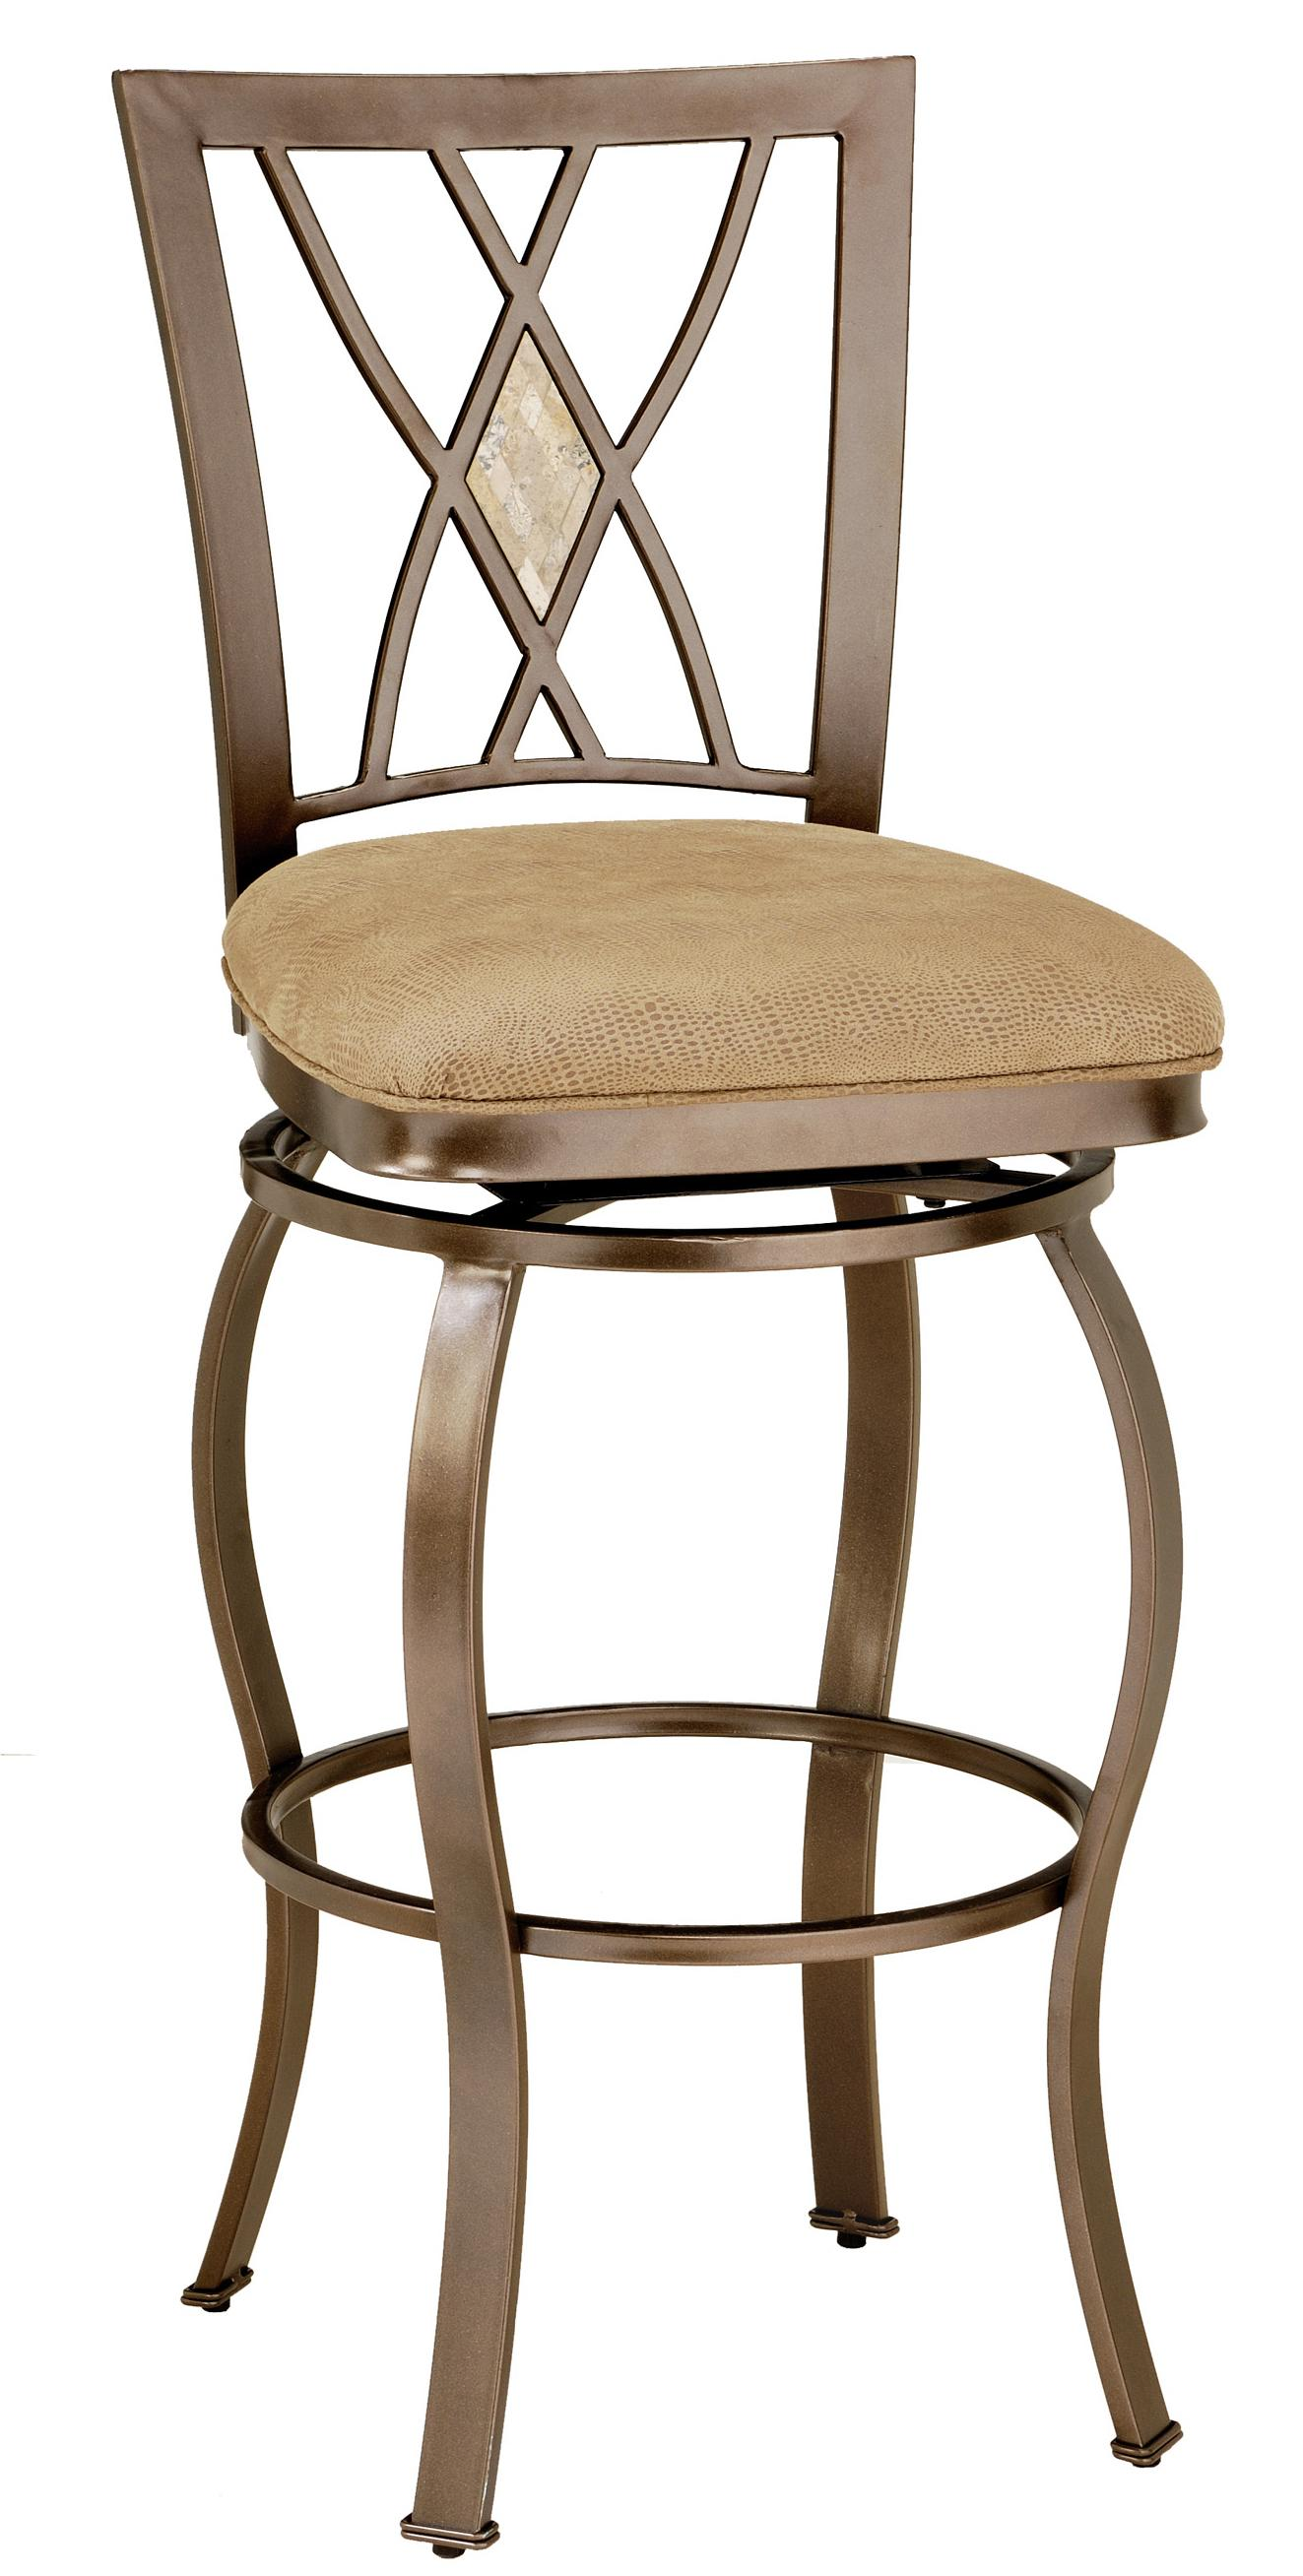 "Hillsdale Metal Stools 30"" Bar Height Brookside Stool - Item Number: 4815-831"